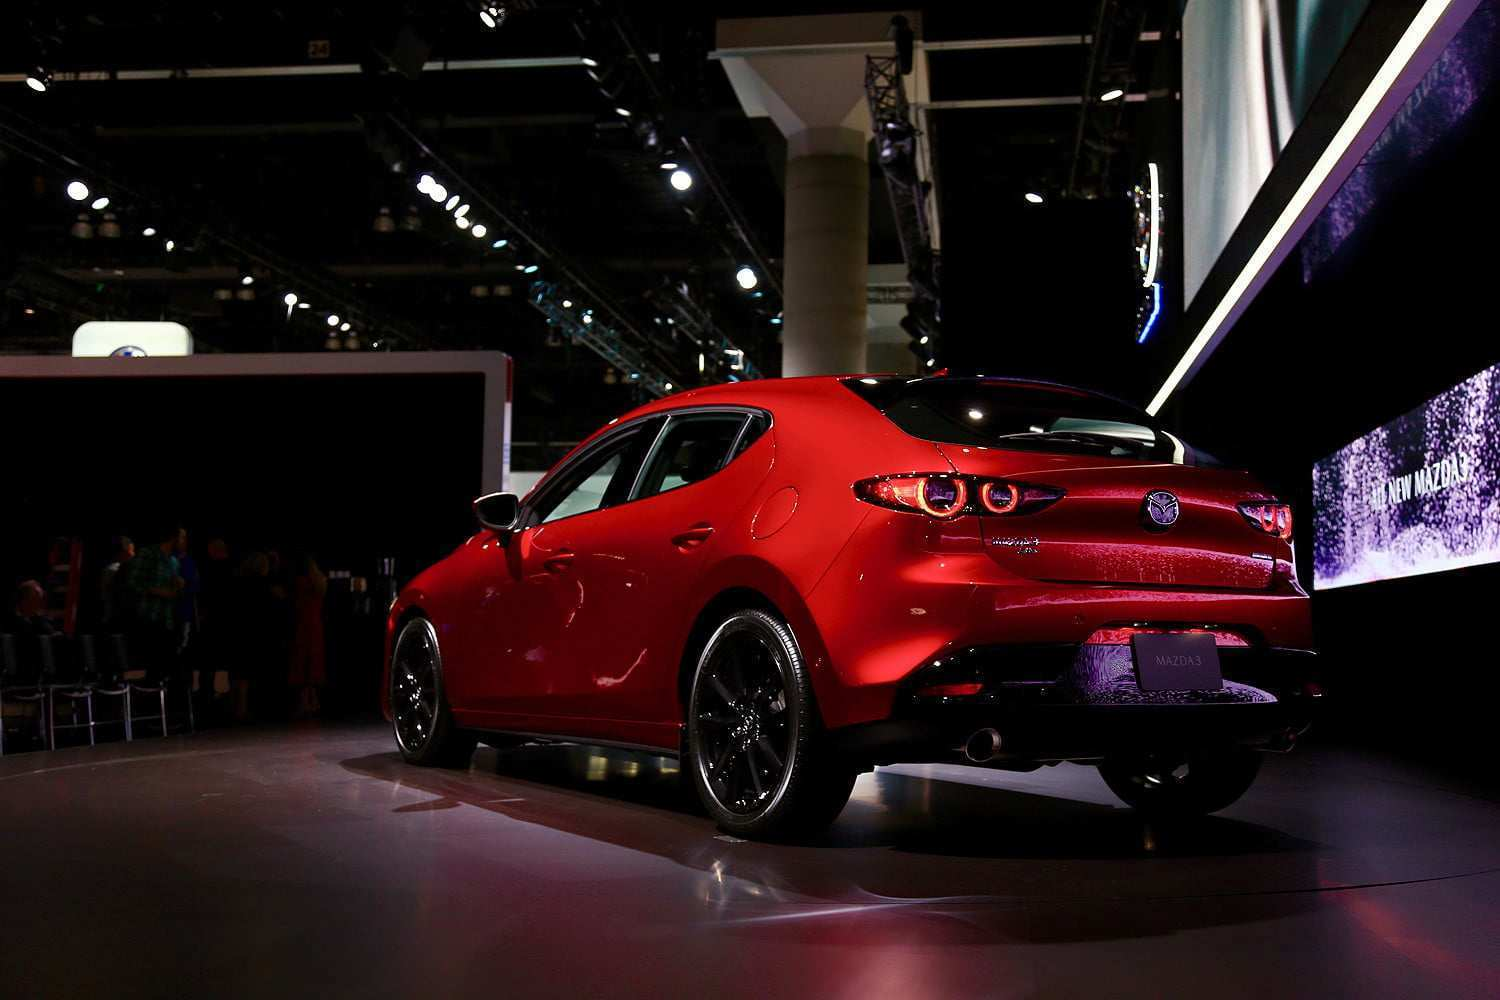 66 All New 2020 Mazda 3 Fuel Economy Release Date And Concept